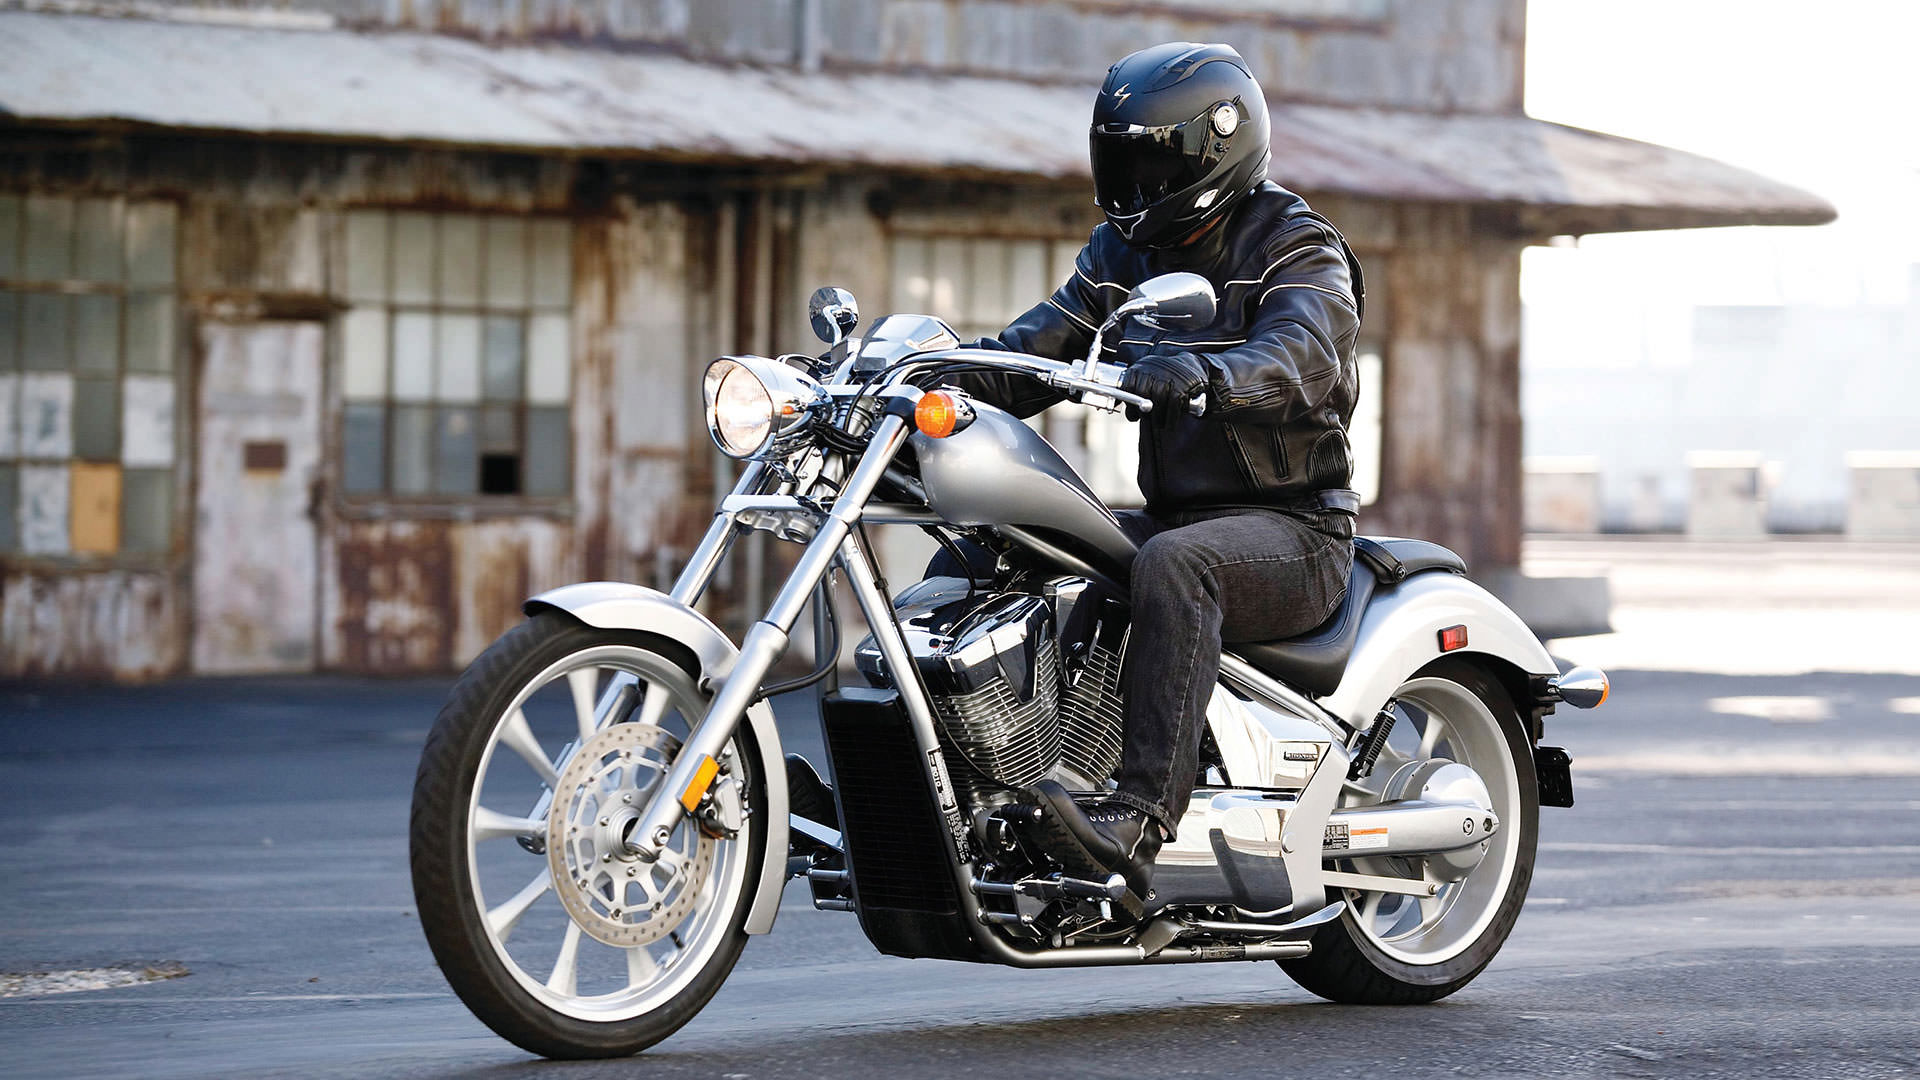 2017 Honda Fury 1300 Review Specs Features Changes Easy 13 Wire Diagram For Chopper Specifications Model Id Vt1300cxh Vt13cxh